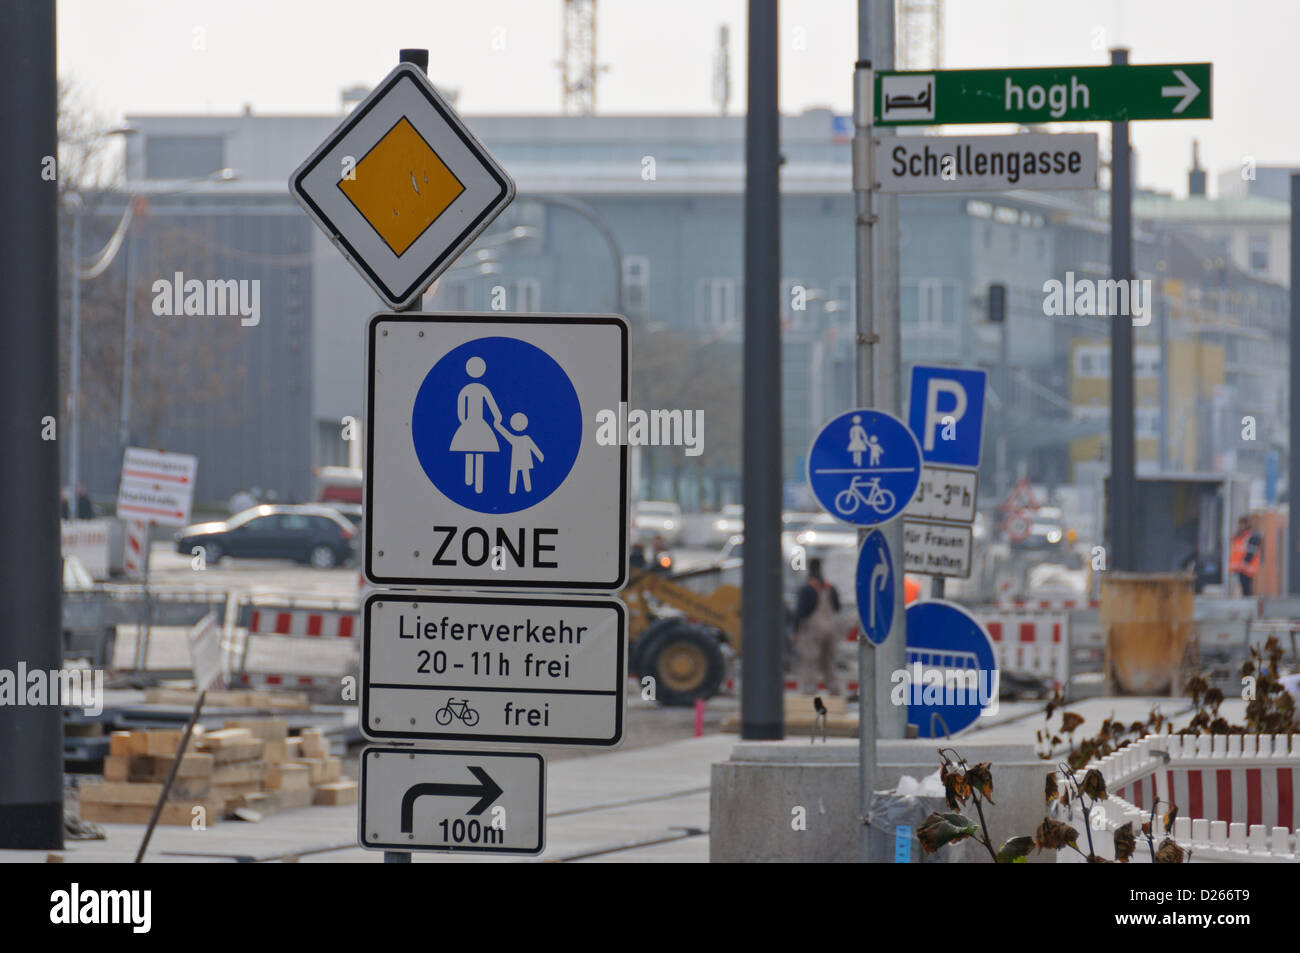 Forest of traffic signs at a road construction zone – Heilbronn, South Germany - Stock Image